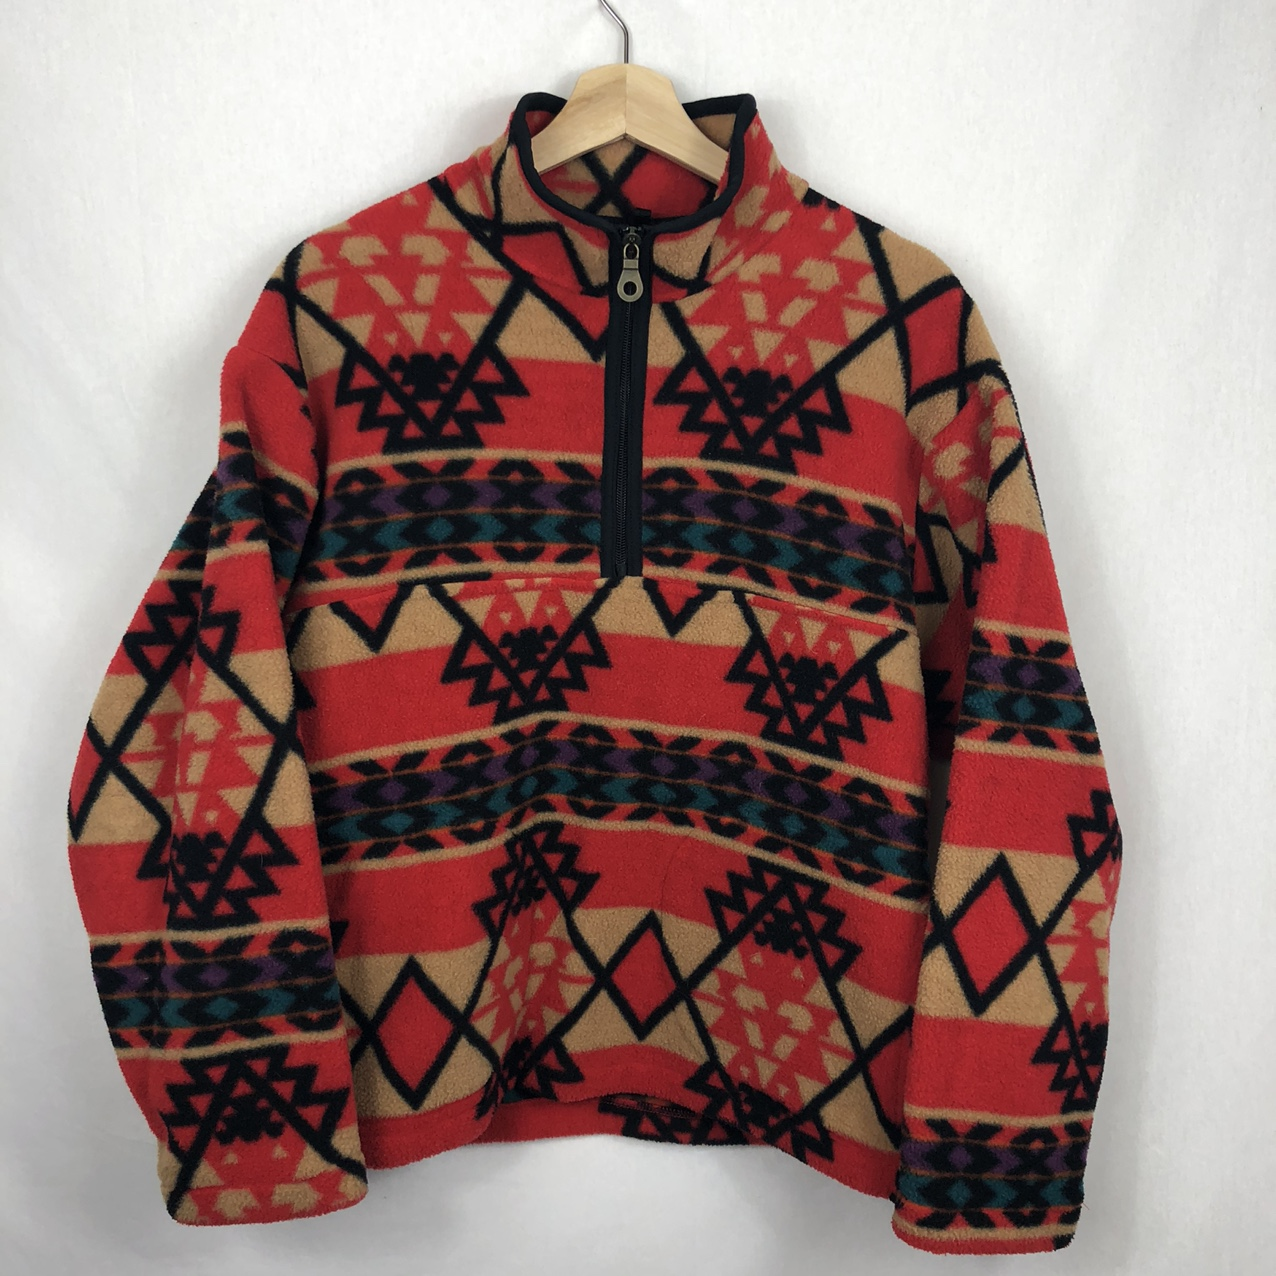 Product Image 1 - Woolrich size small Aztec pattern